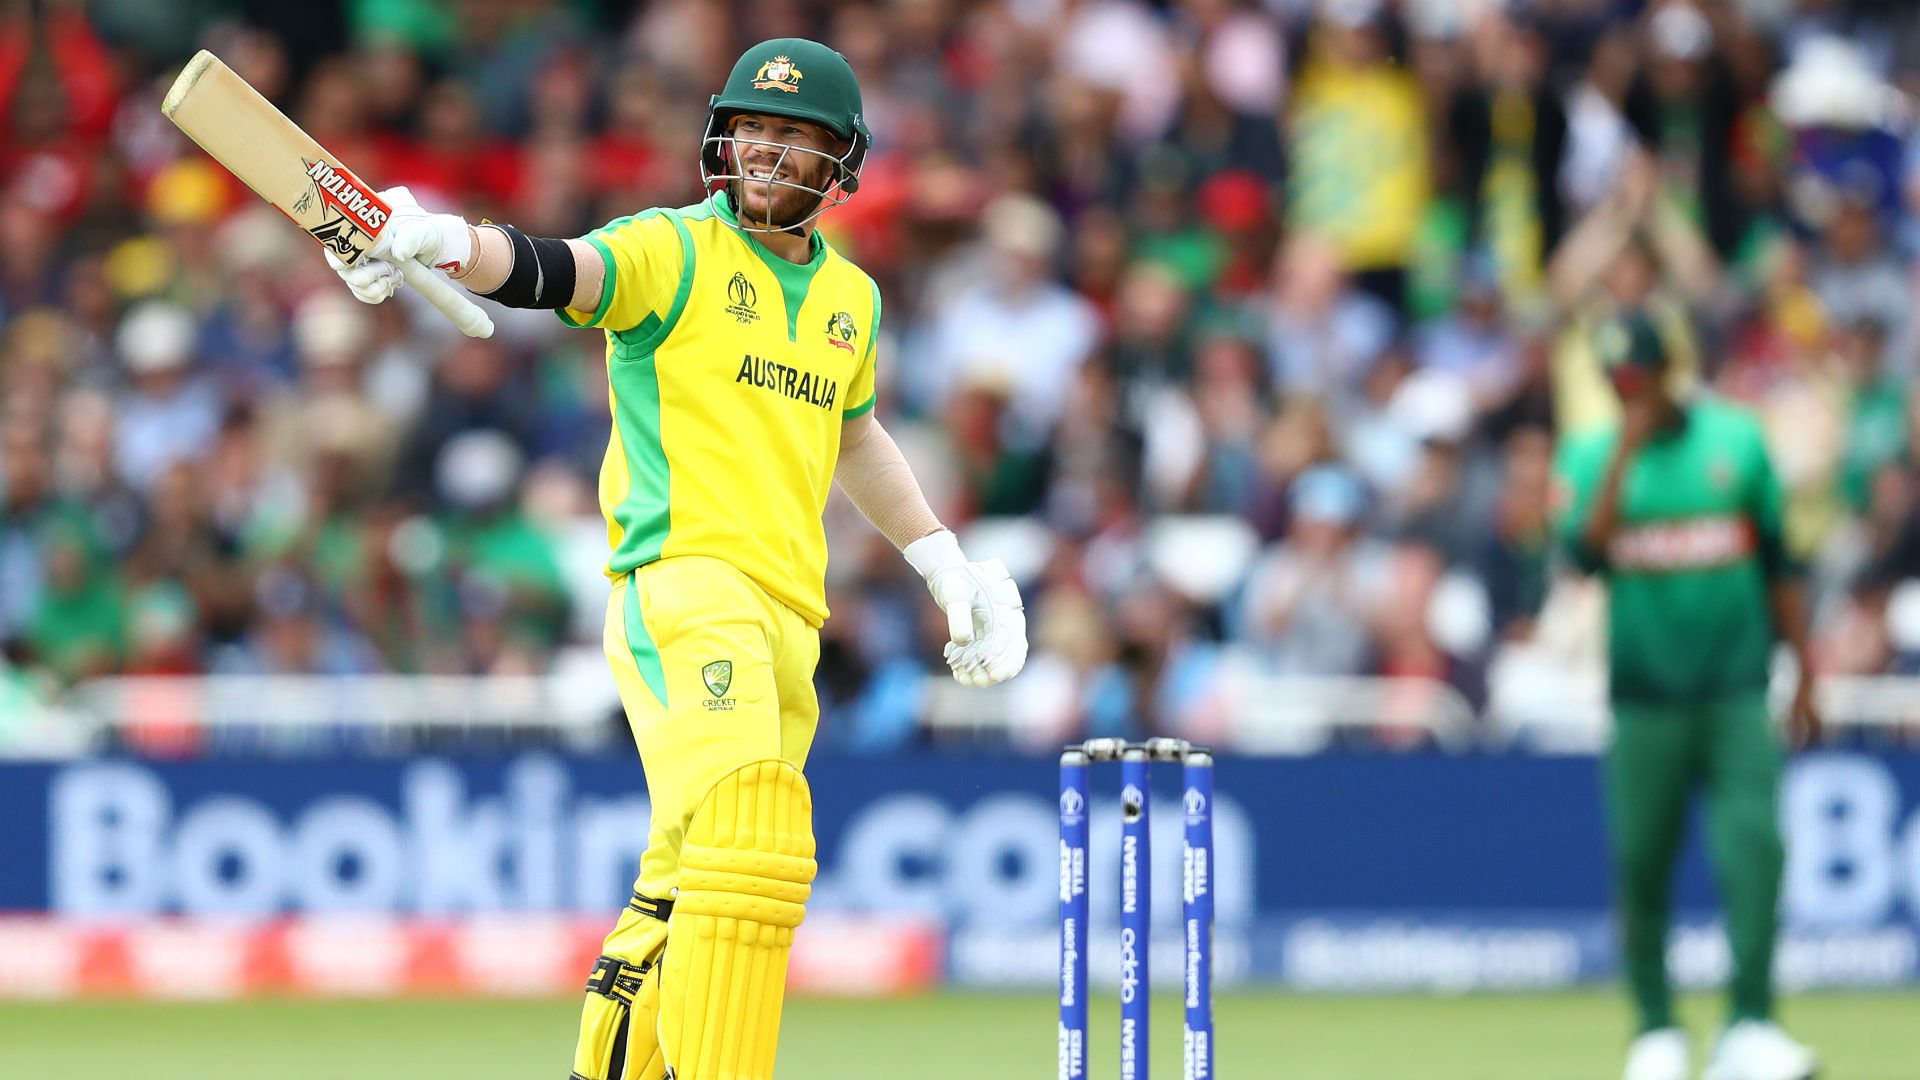 Australia moved to the top of the Cricket World Cup table by beating Bangladesh after David Warner made a magnificent 166.